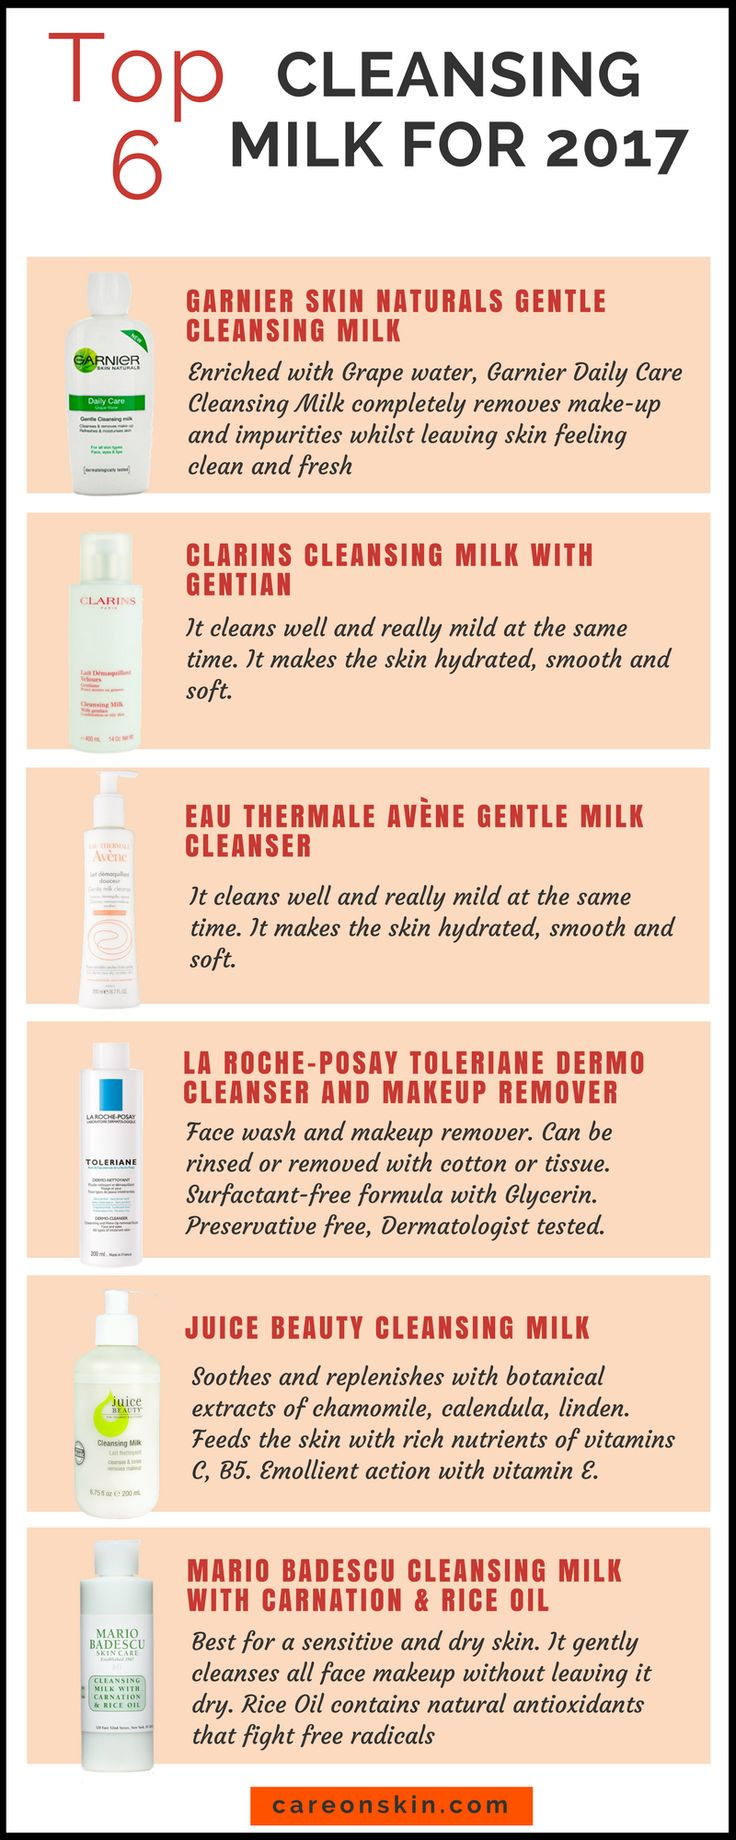 Top 6 Cleansing Milk for 2017. Cleansing milk for face. Cleansing milk for dry skin and oily skin. Best for Normal, Dry, Sensitive and/or Combination Skin. List of milk cleanser products for Skincare Read More ->https://careonskin.com/top-6-cleansing-milk-for-2017/